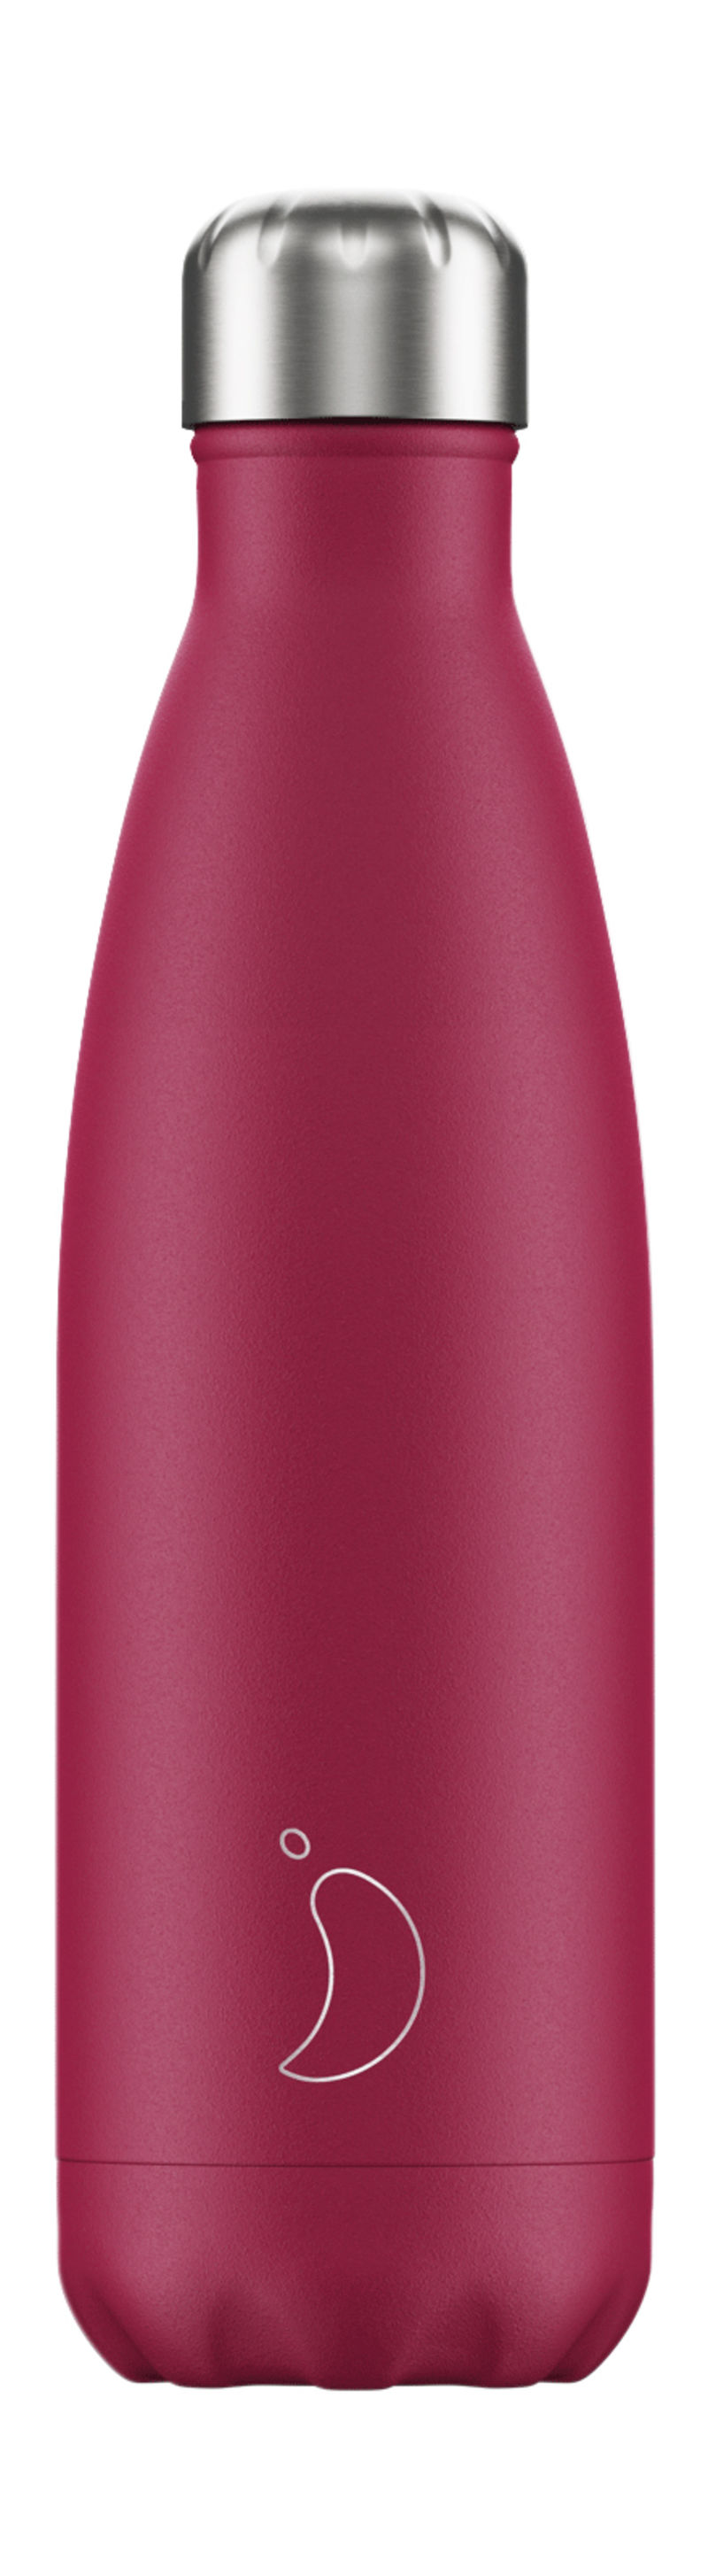 Botella Inox Fucsia Mate 500ml -